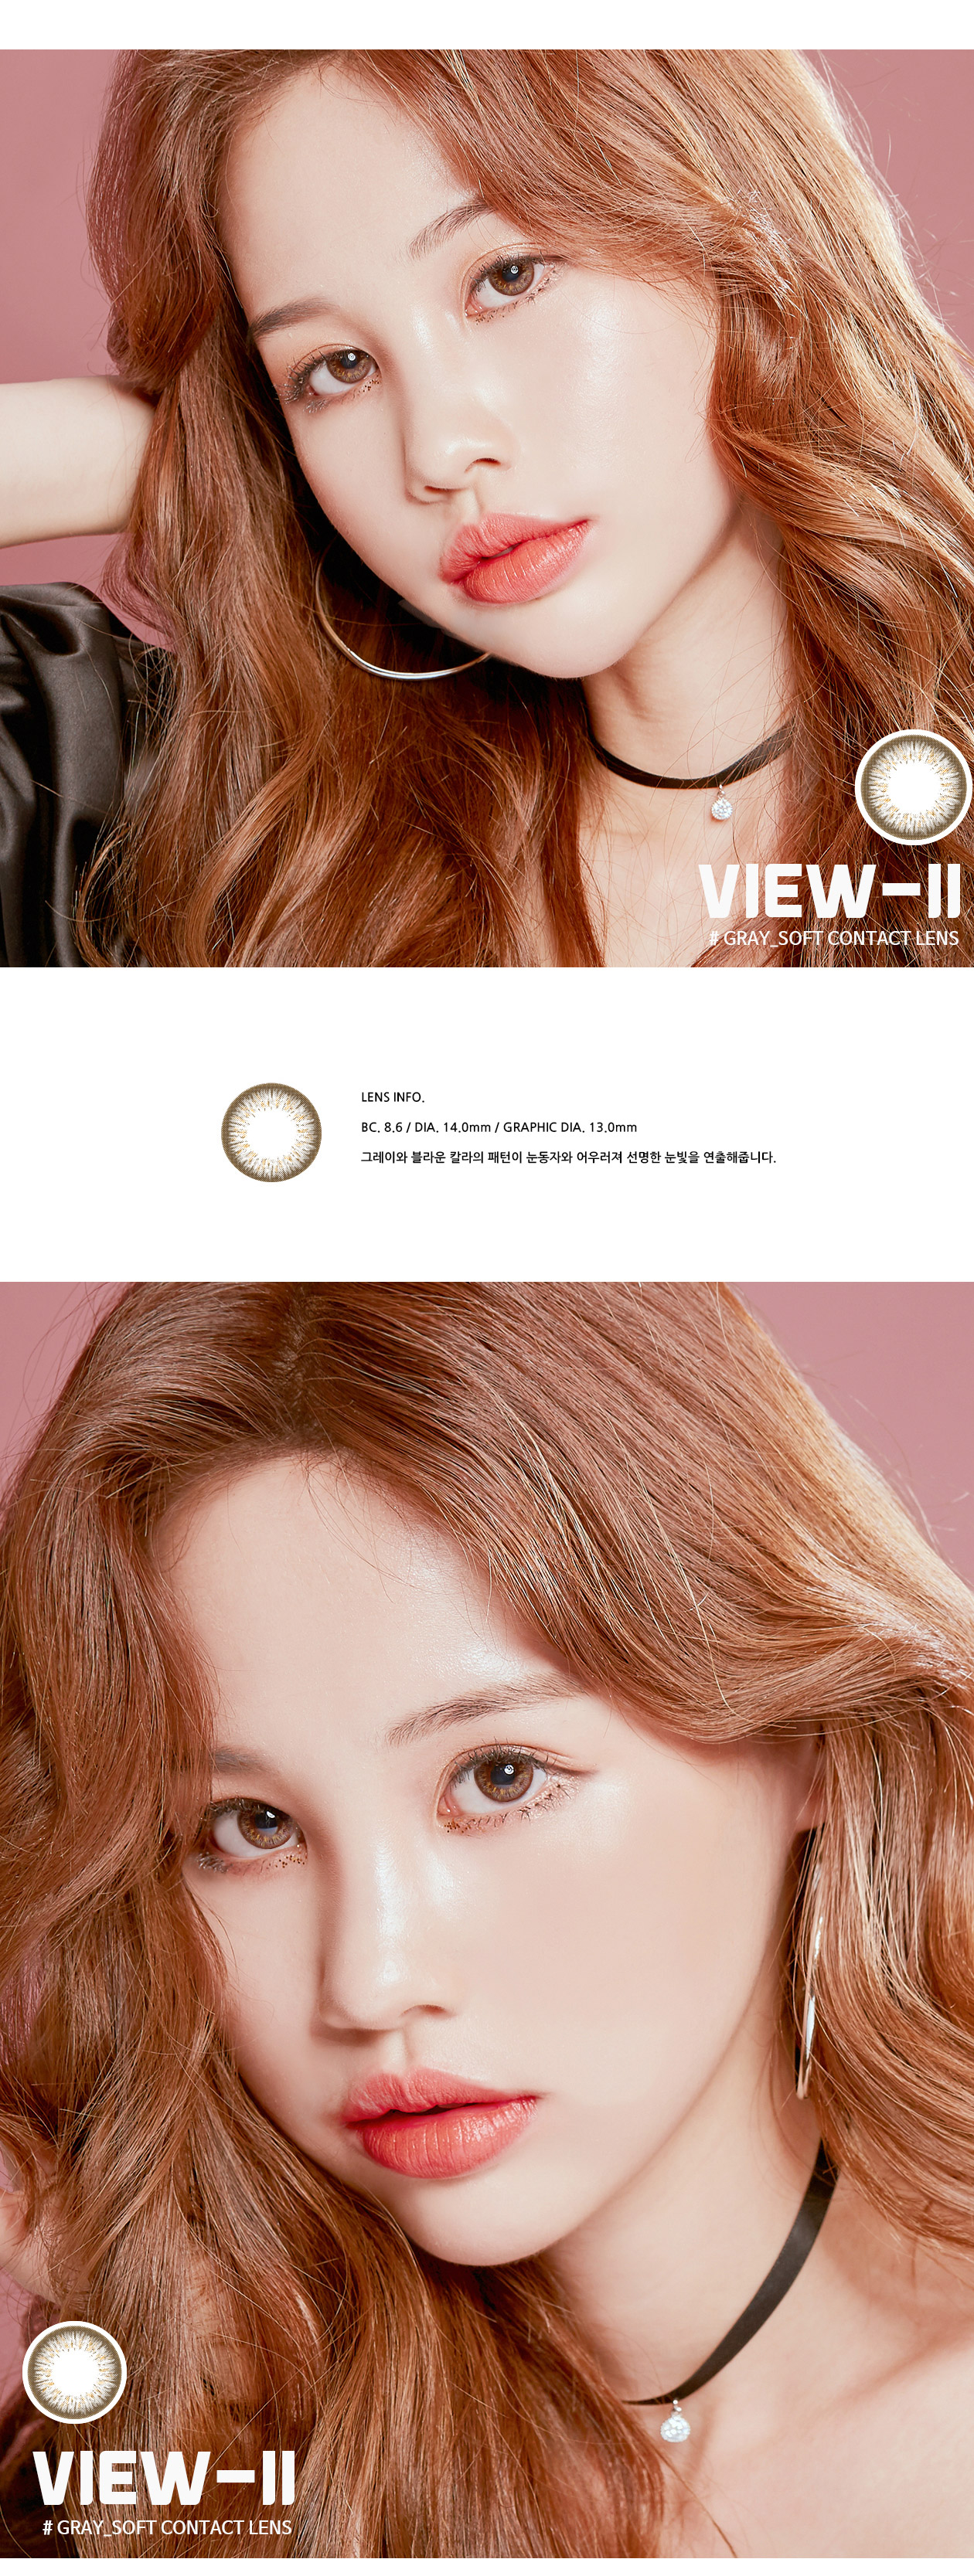 moisture-view2-gray-circle-lenses1.jpg